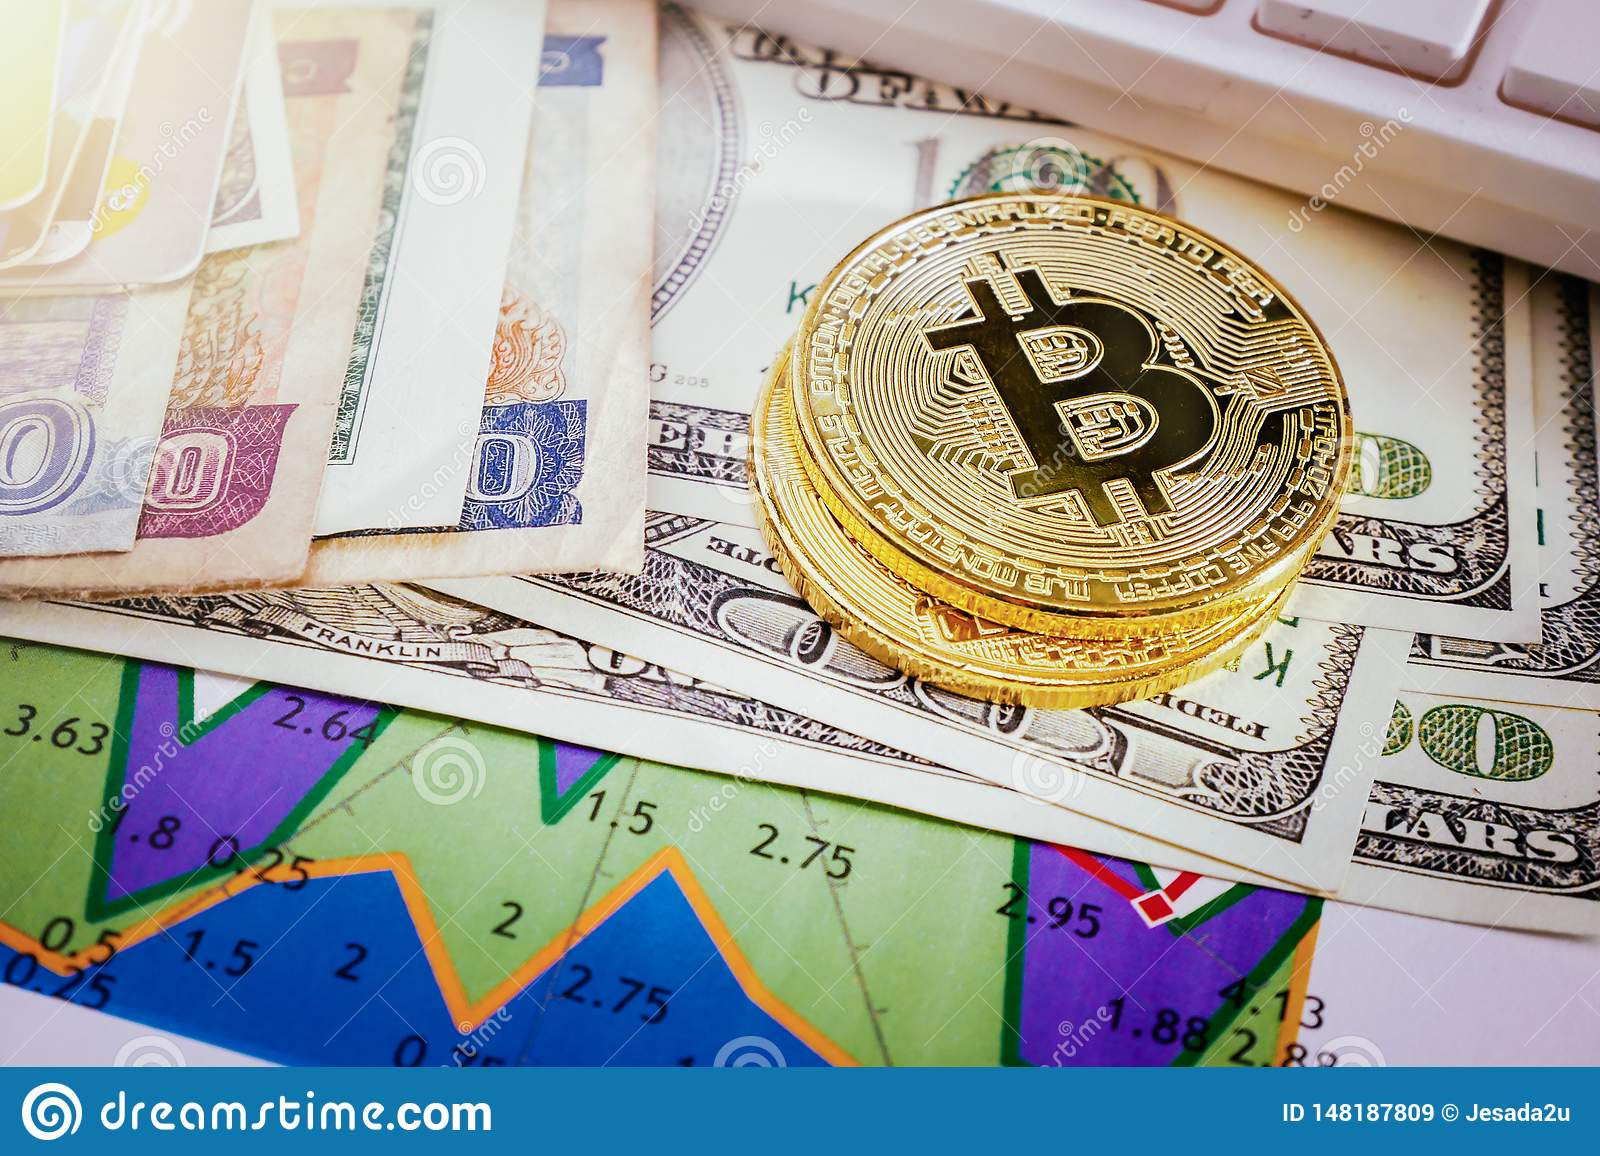 Mars coin crypto currency exchange rates frase joelmir betting 1x2